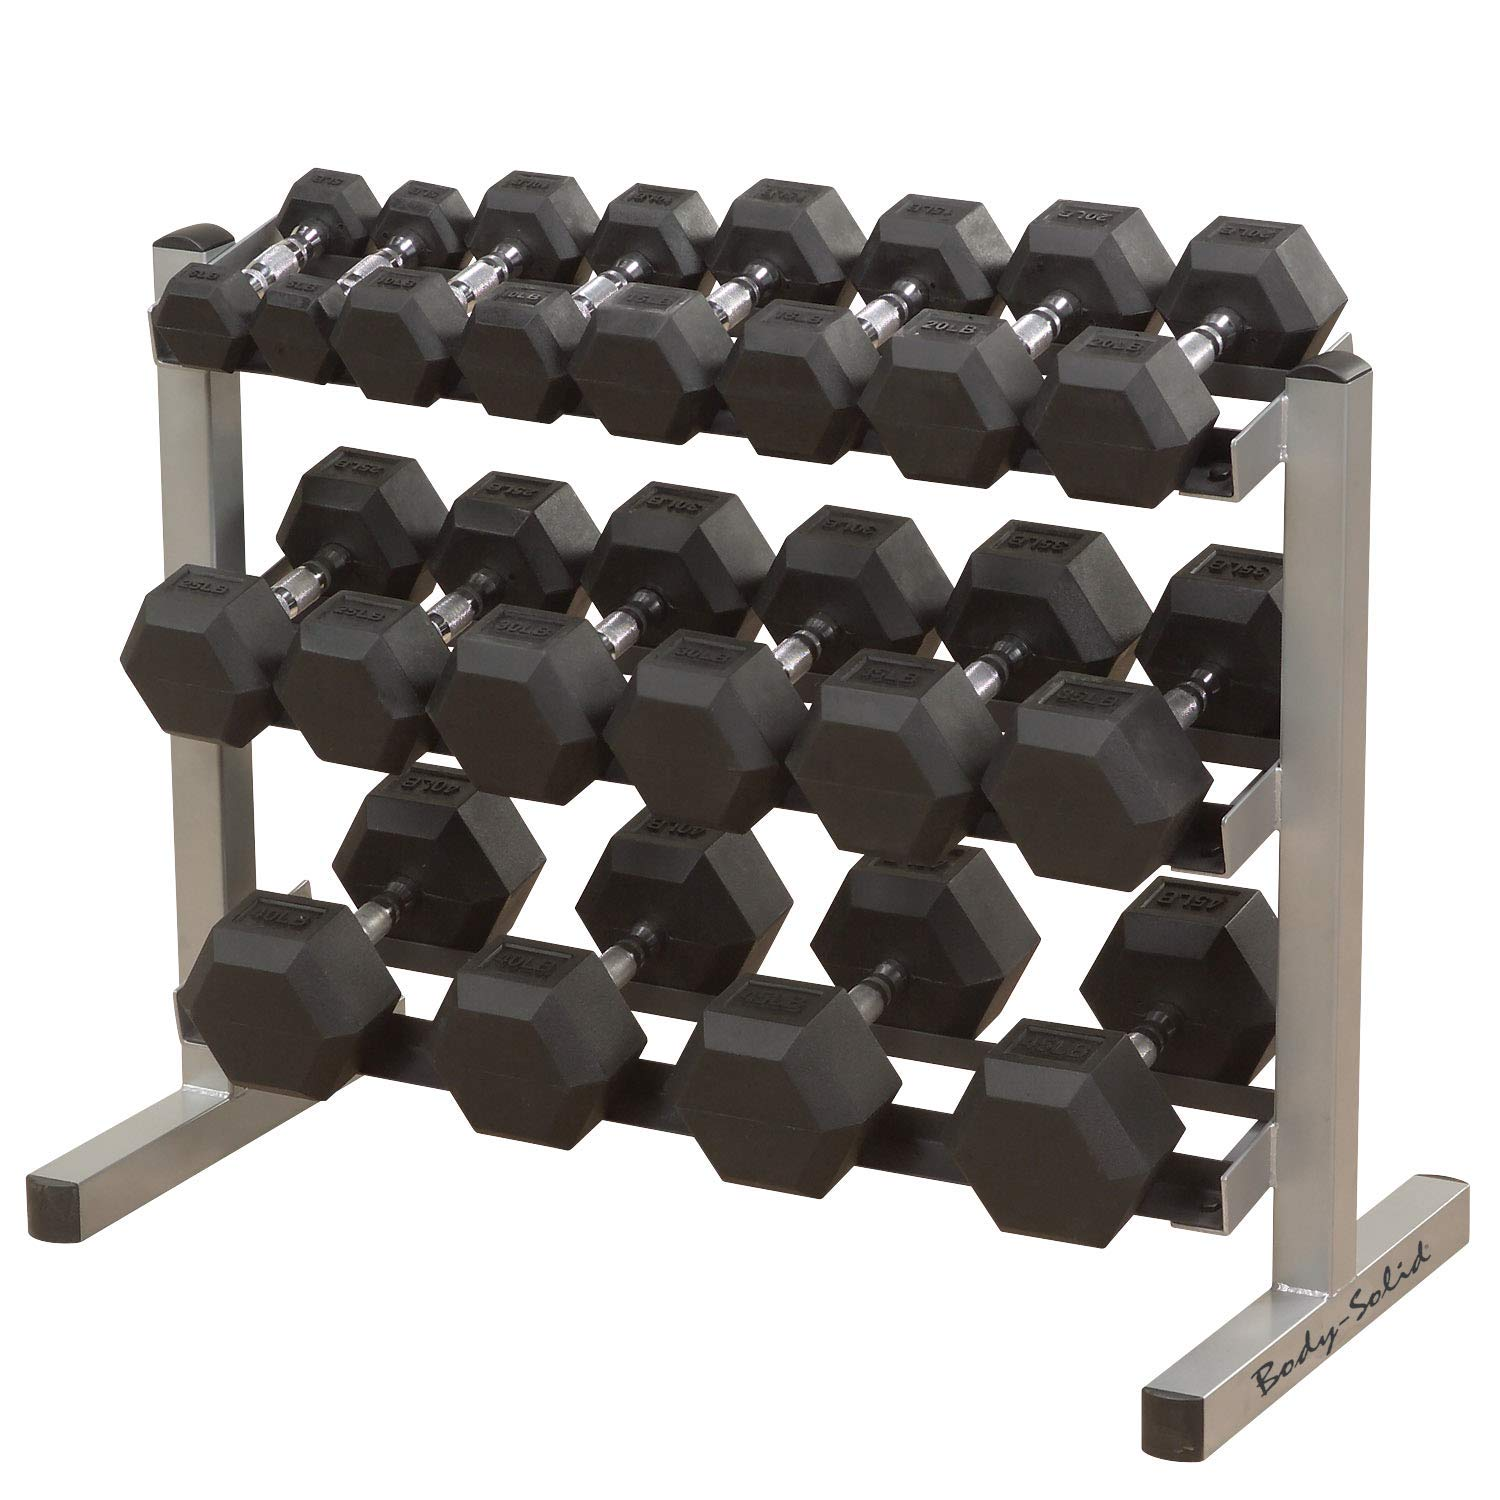 Top 10 Best Dumbbell Rack (2020 Reviews & Buying Guide) 8